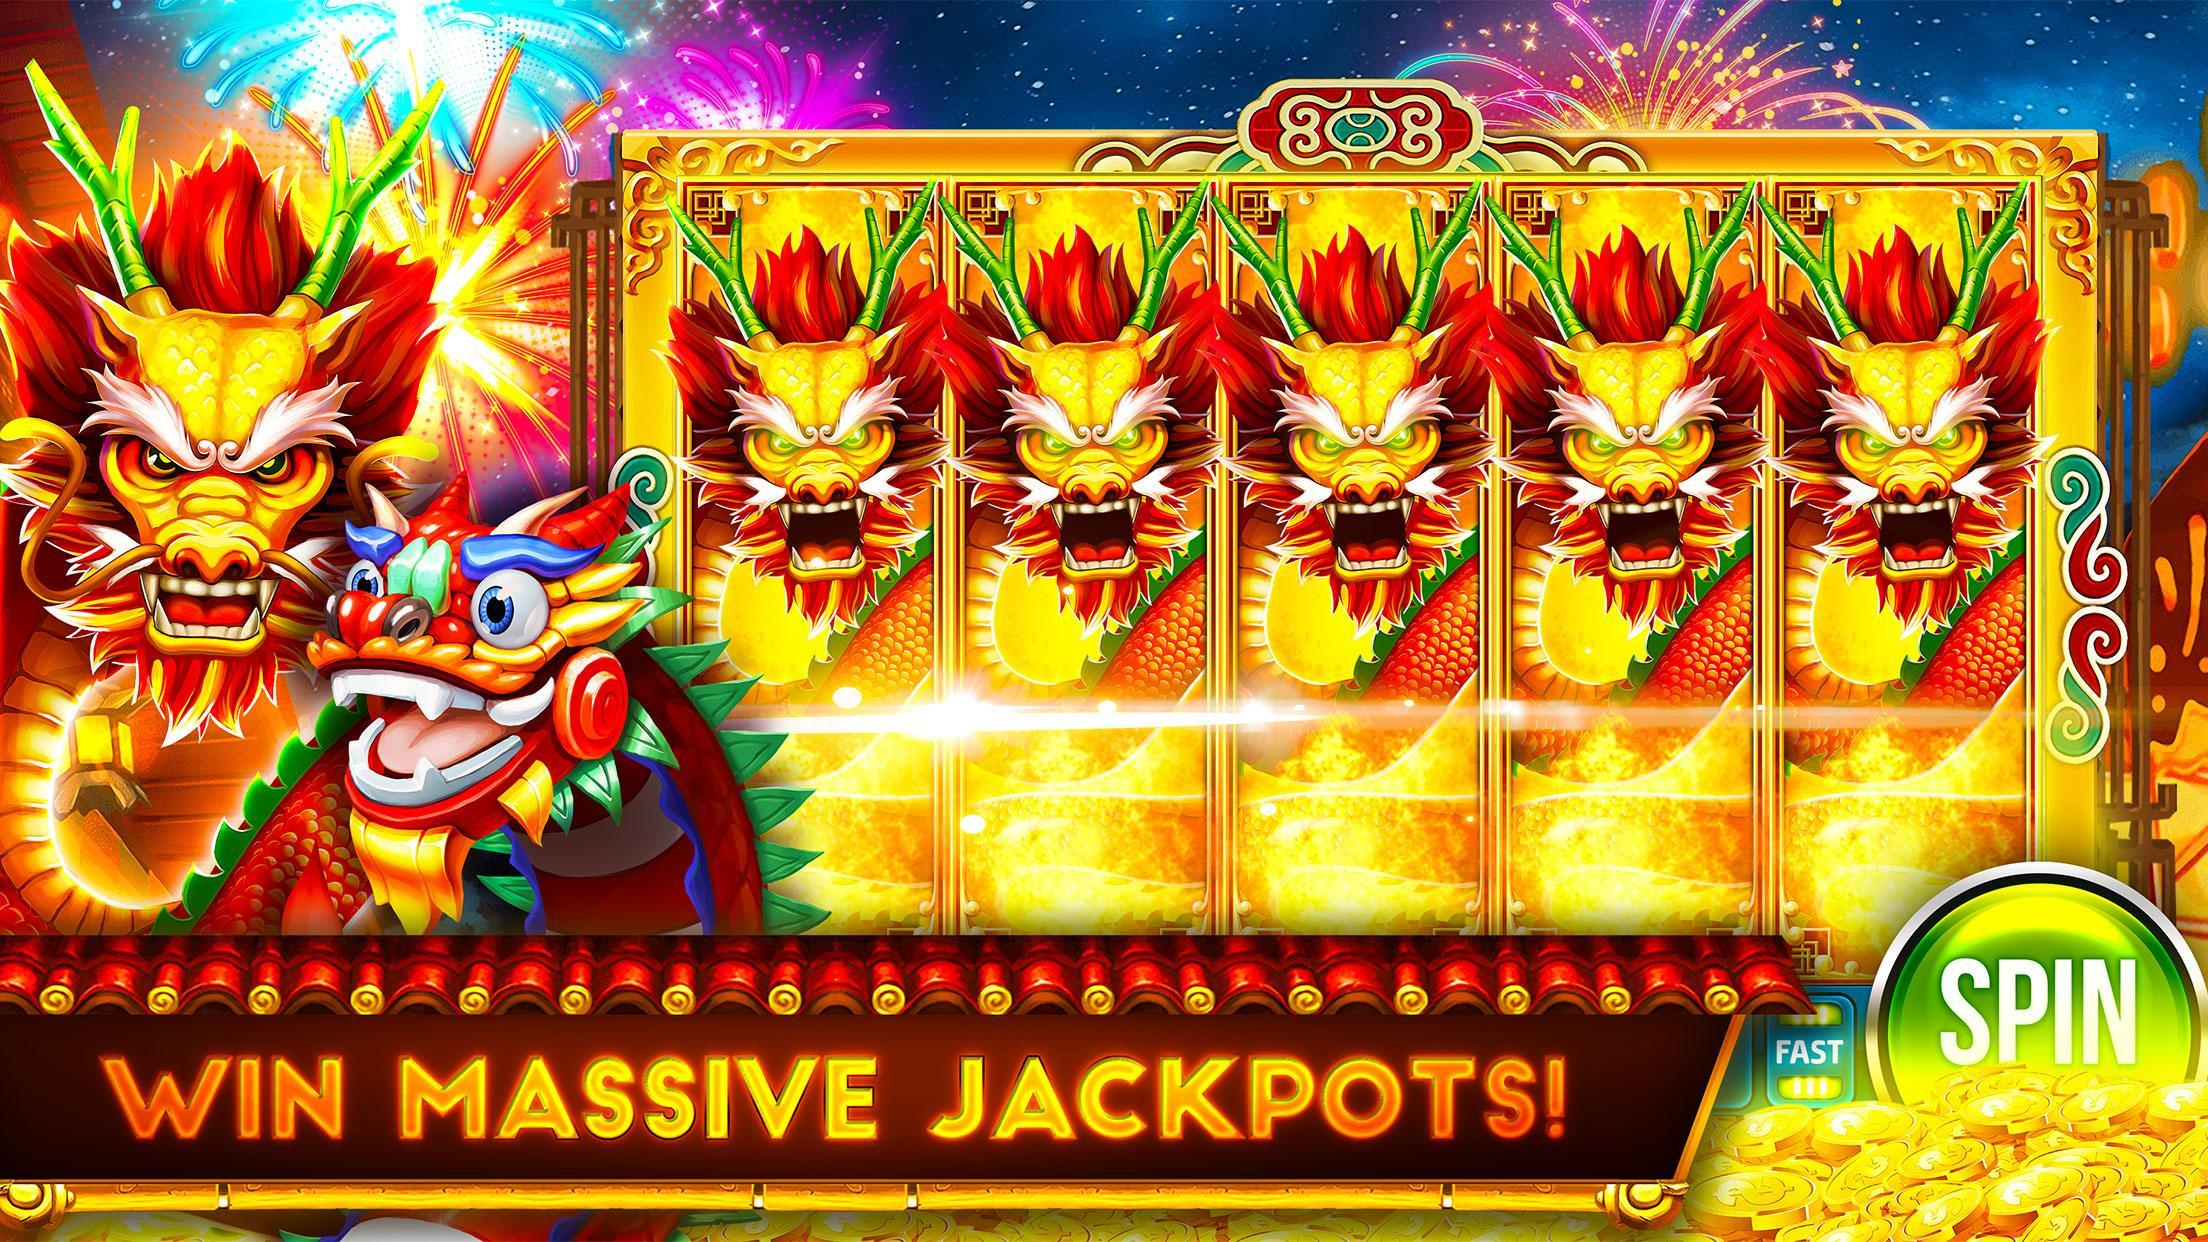 Slots Prosperity Free Slot Machine Casino Game For Android